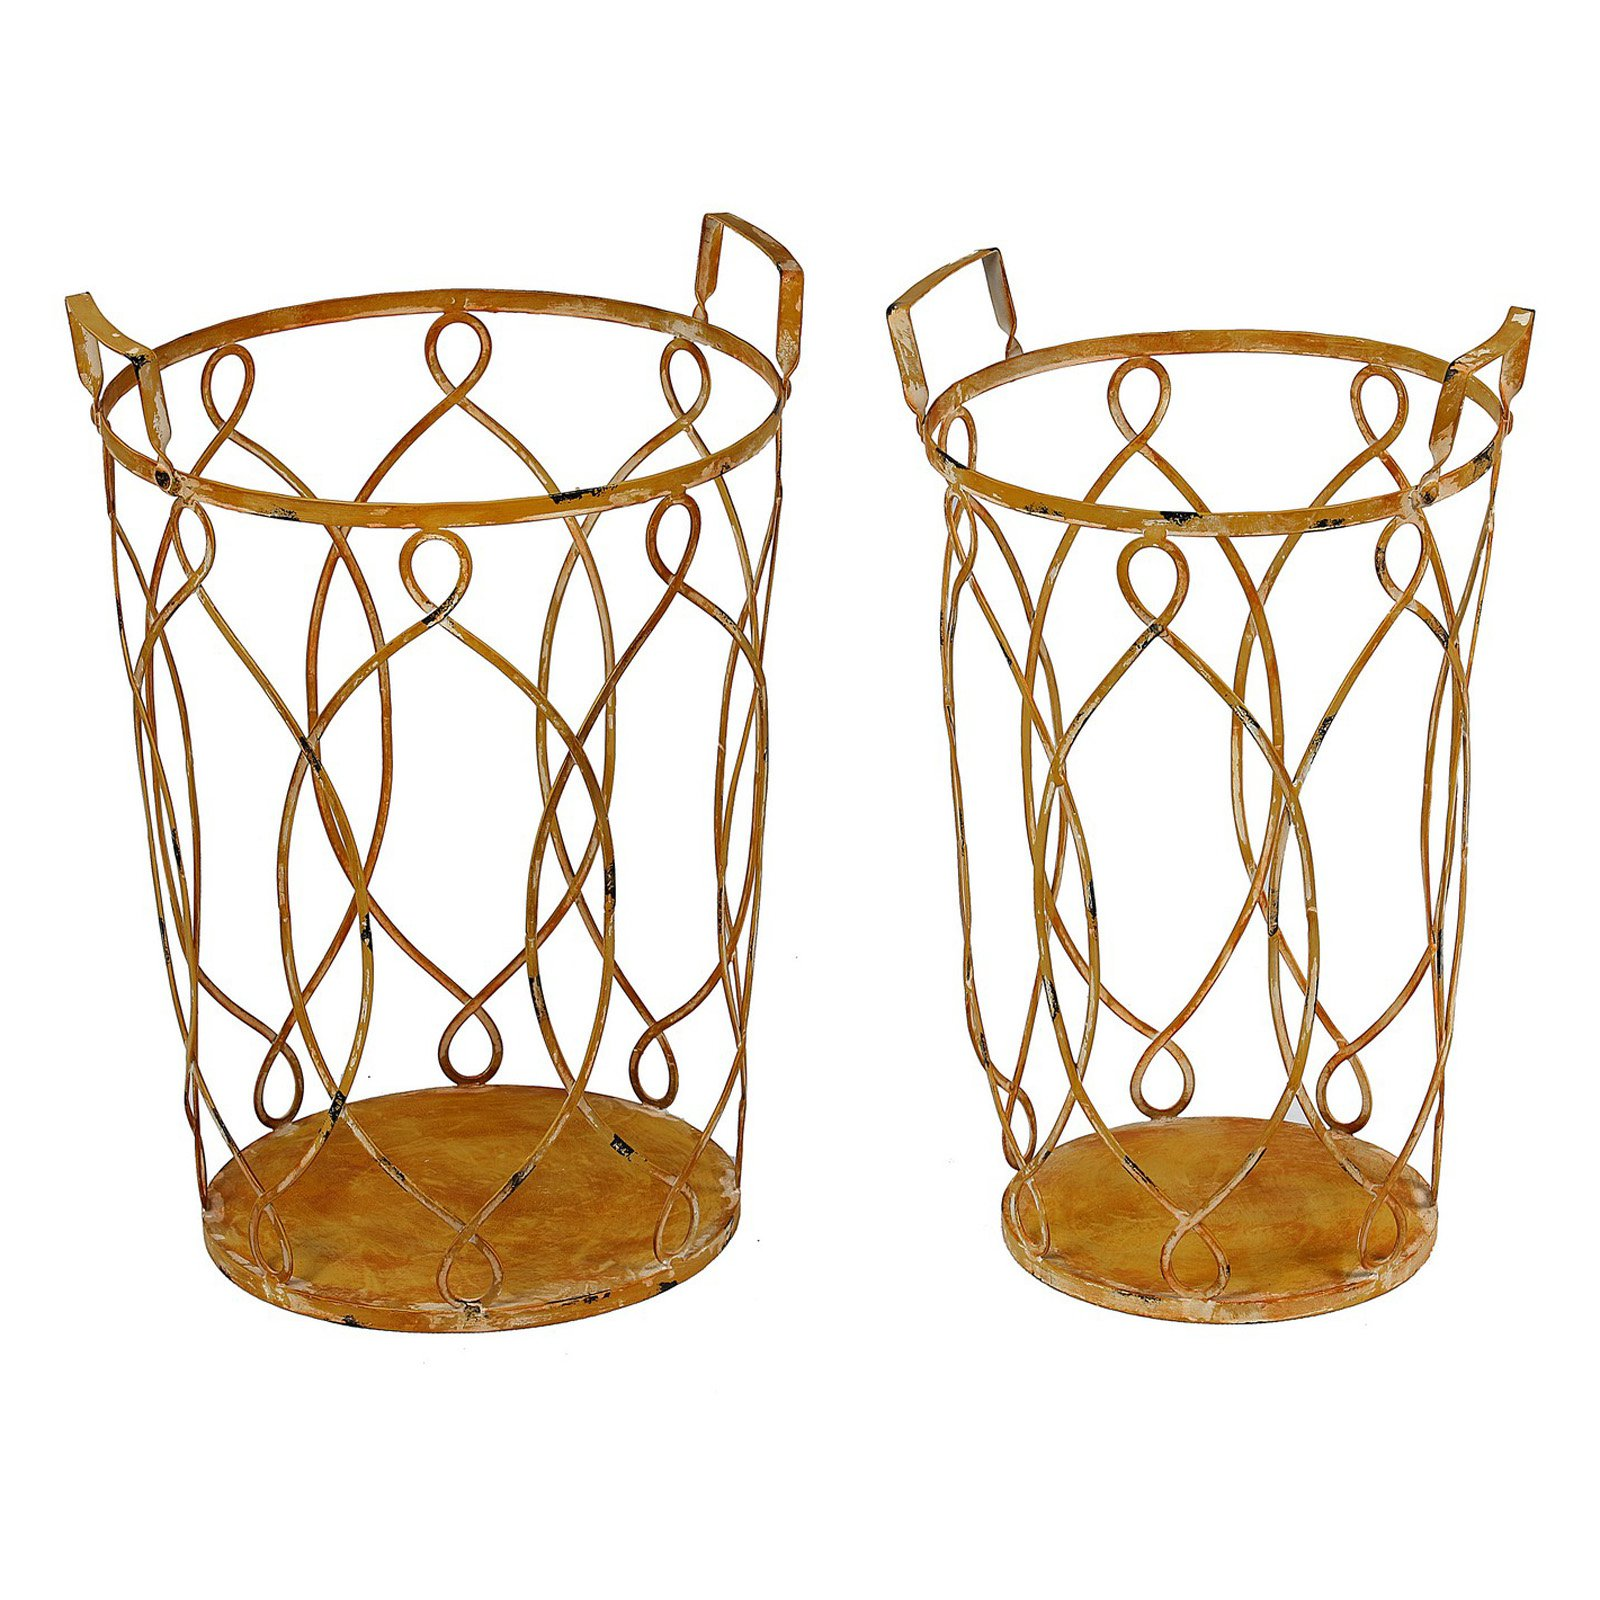 Privilege International 2 Piece Iron Planters